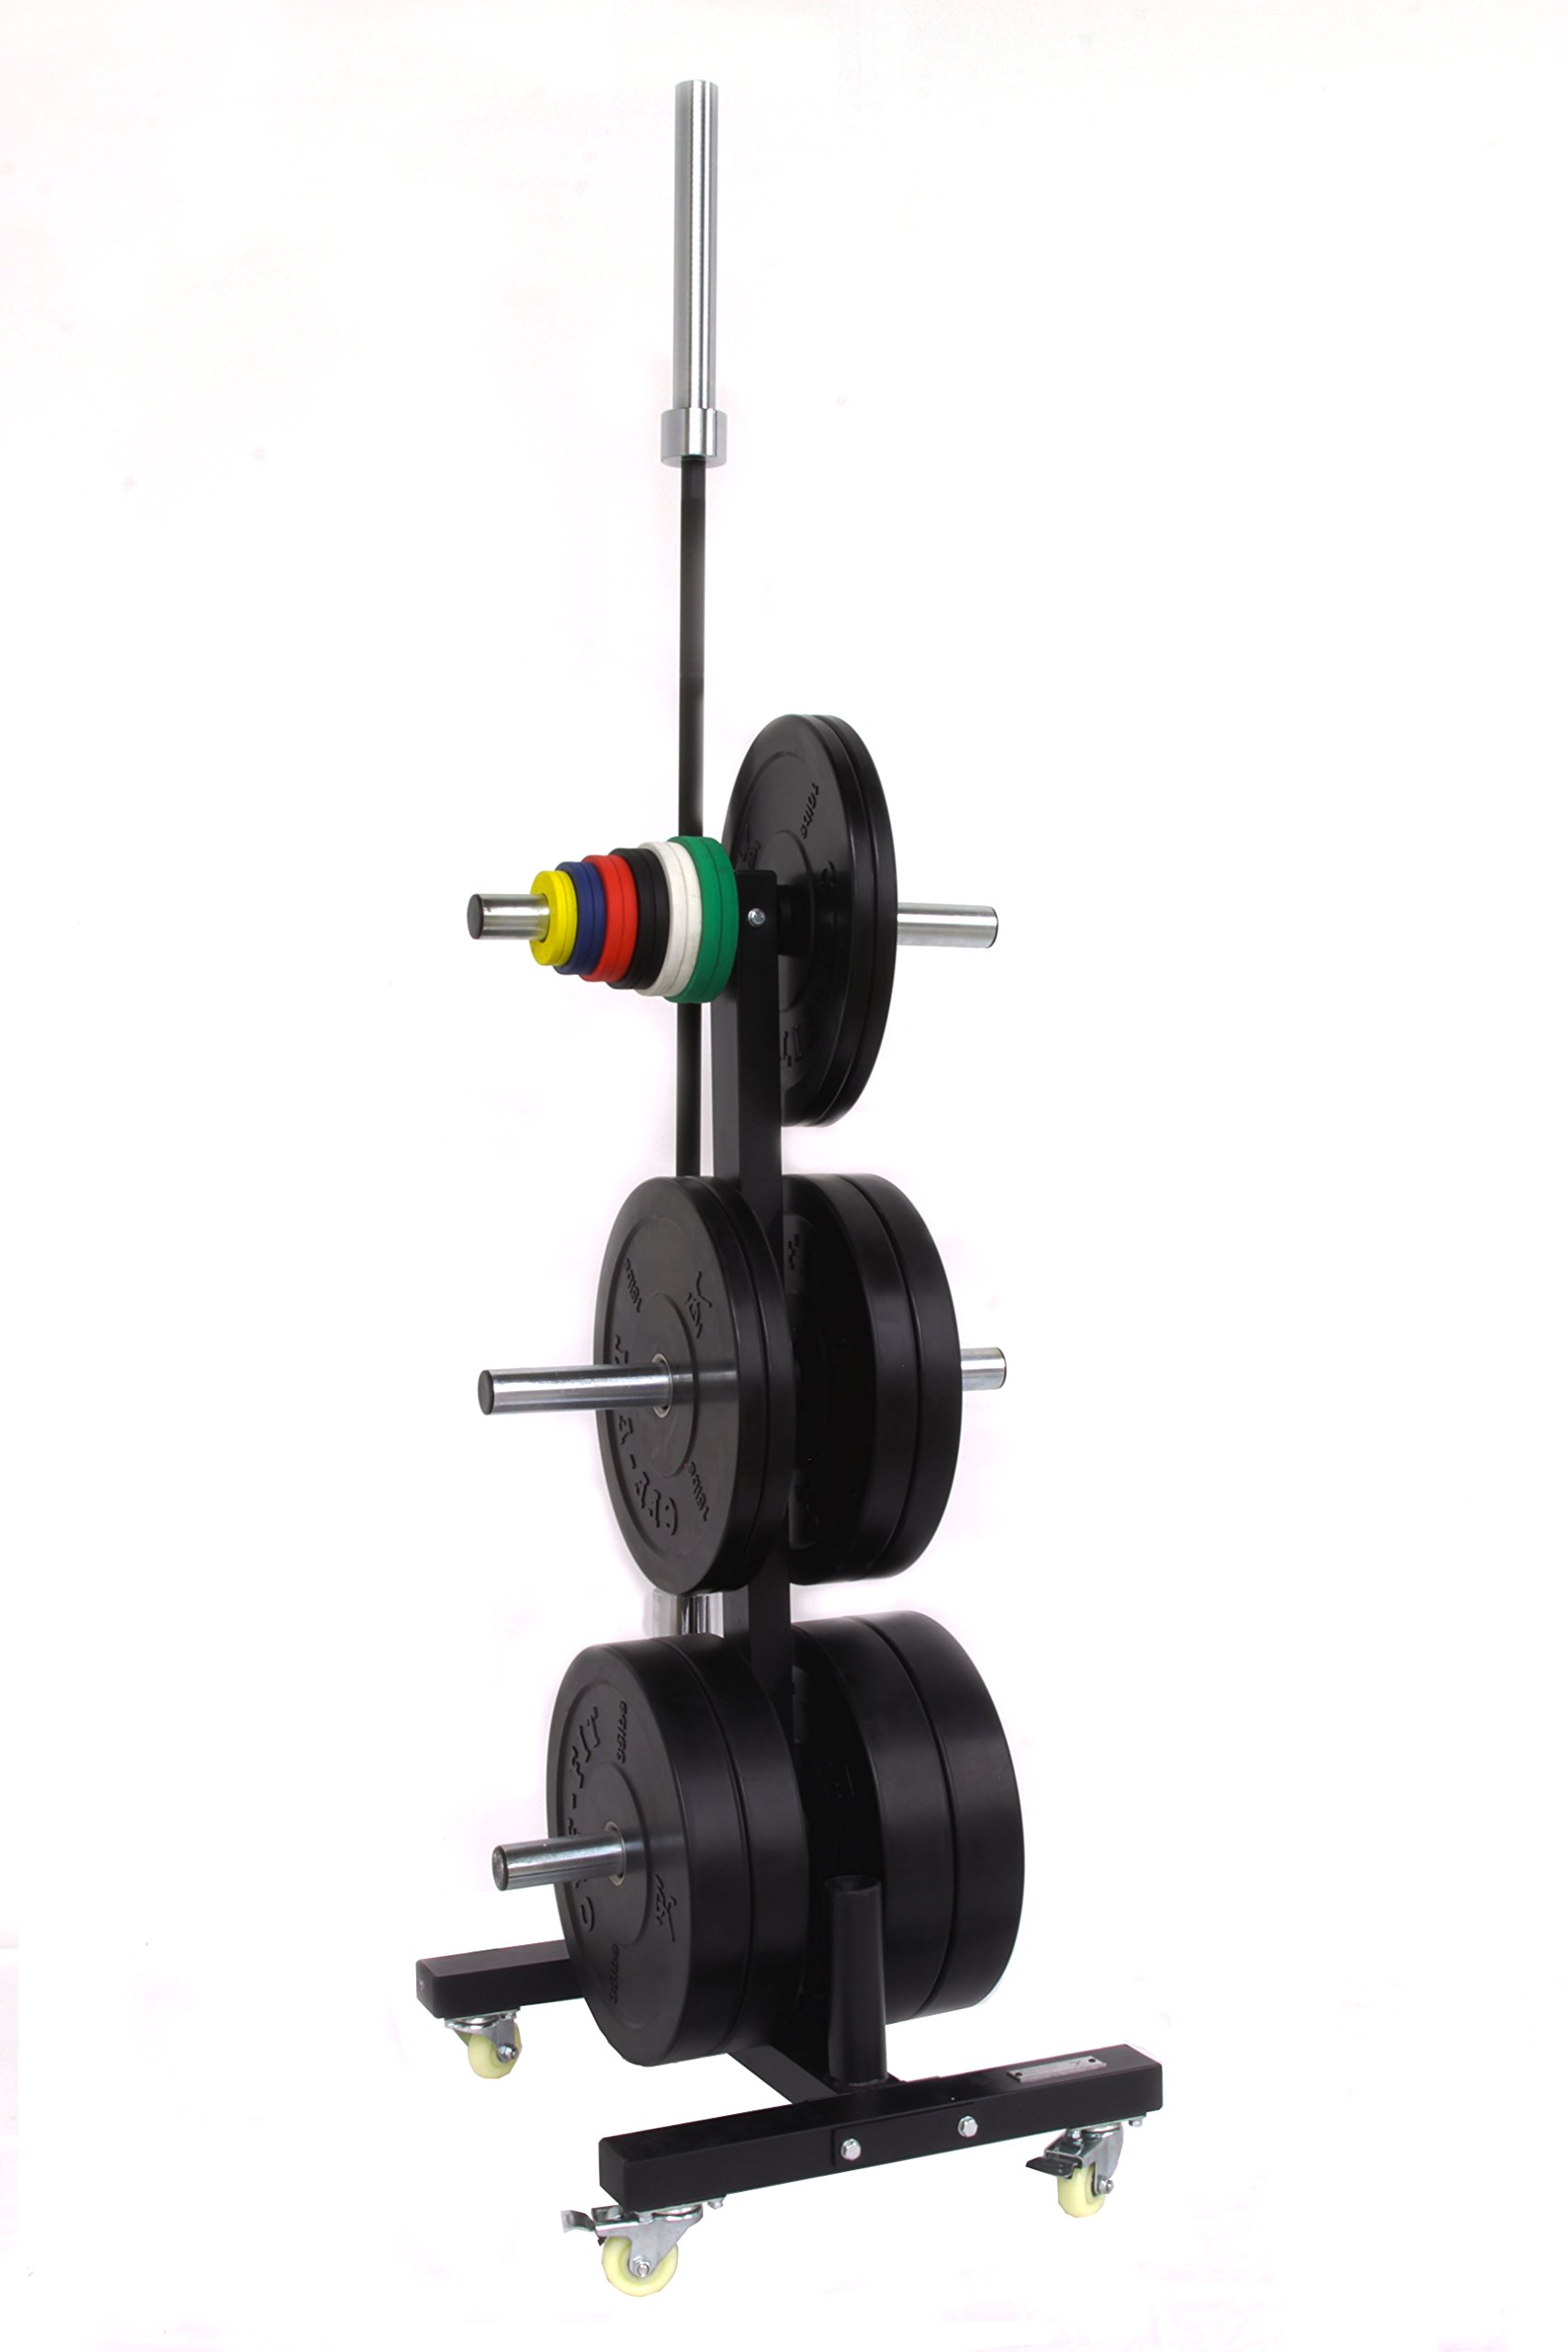 CFF Olympic 2 Bar & Bumper Plate Tree for Weights - Mobile Weight Storage rack w/wheels. Perfect for any commercial gym or fitness training center